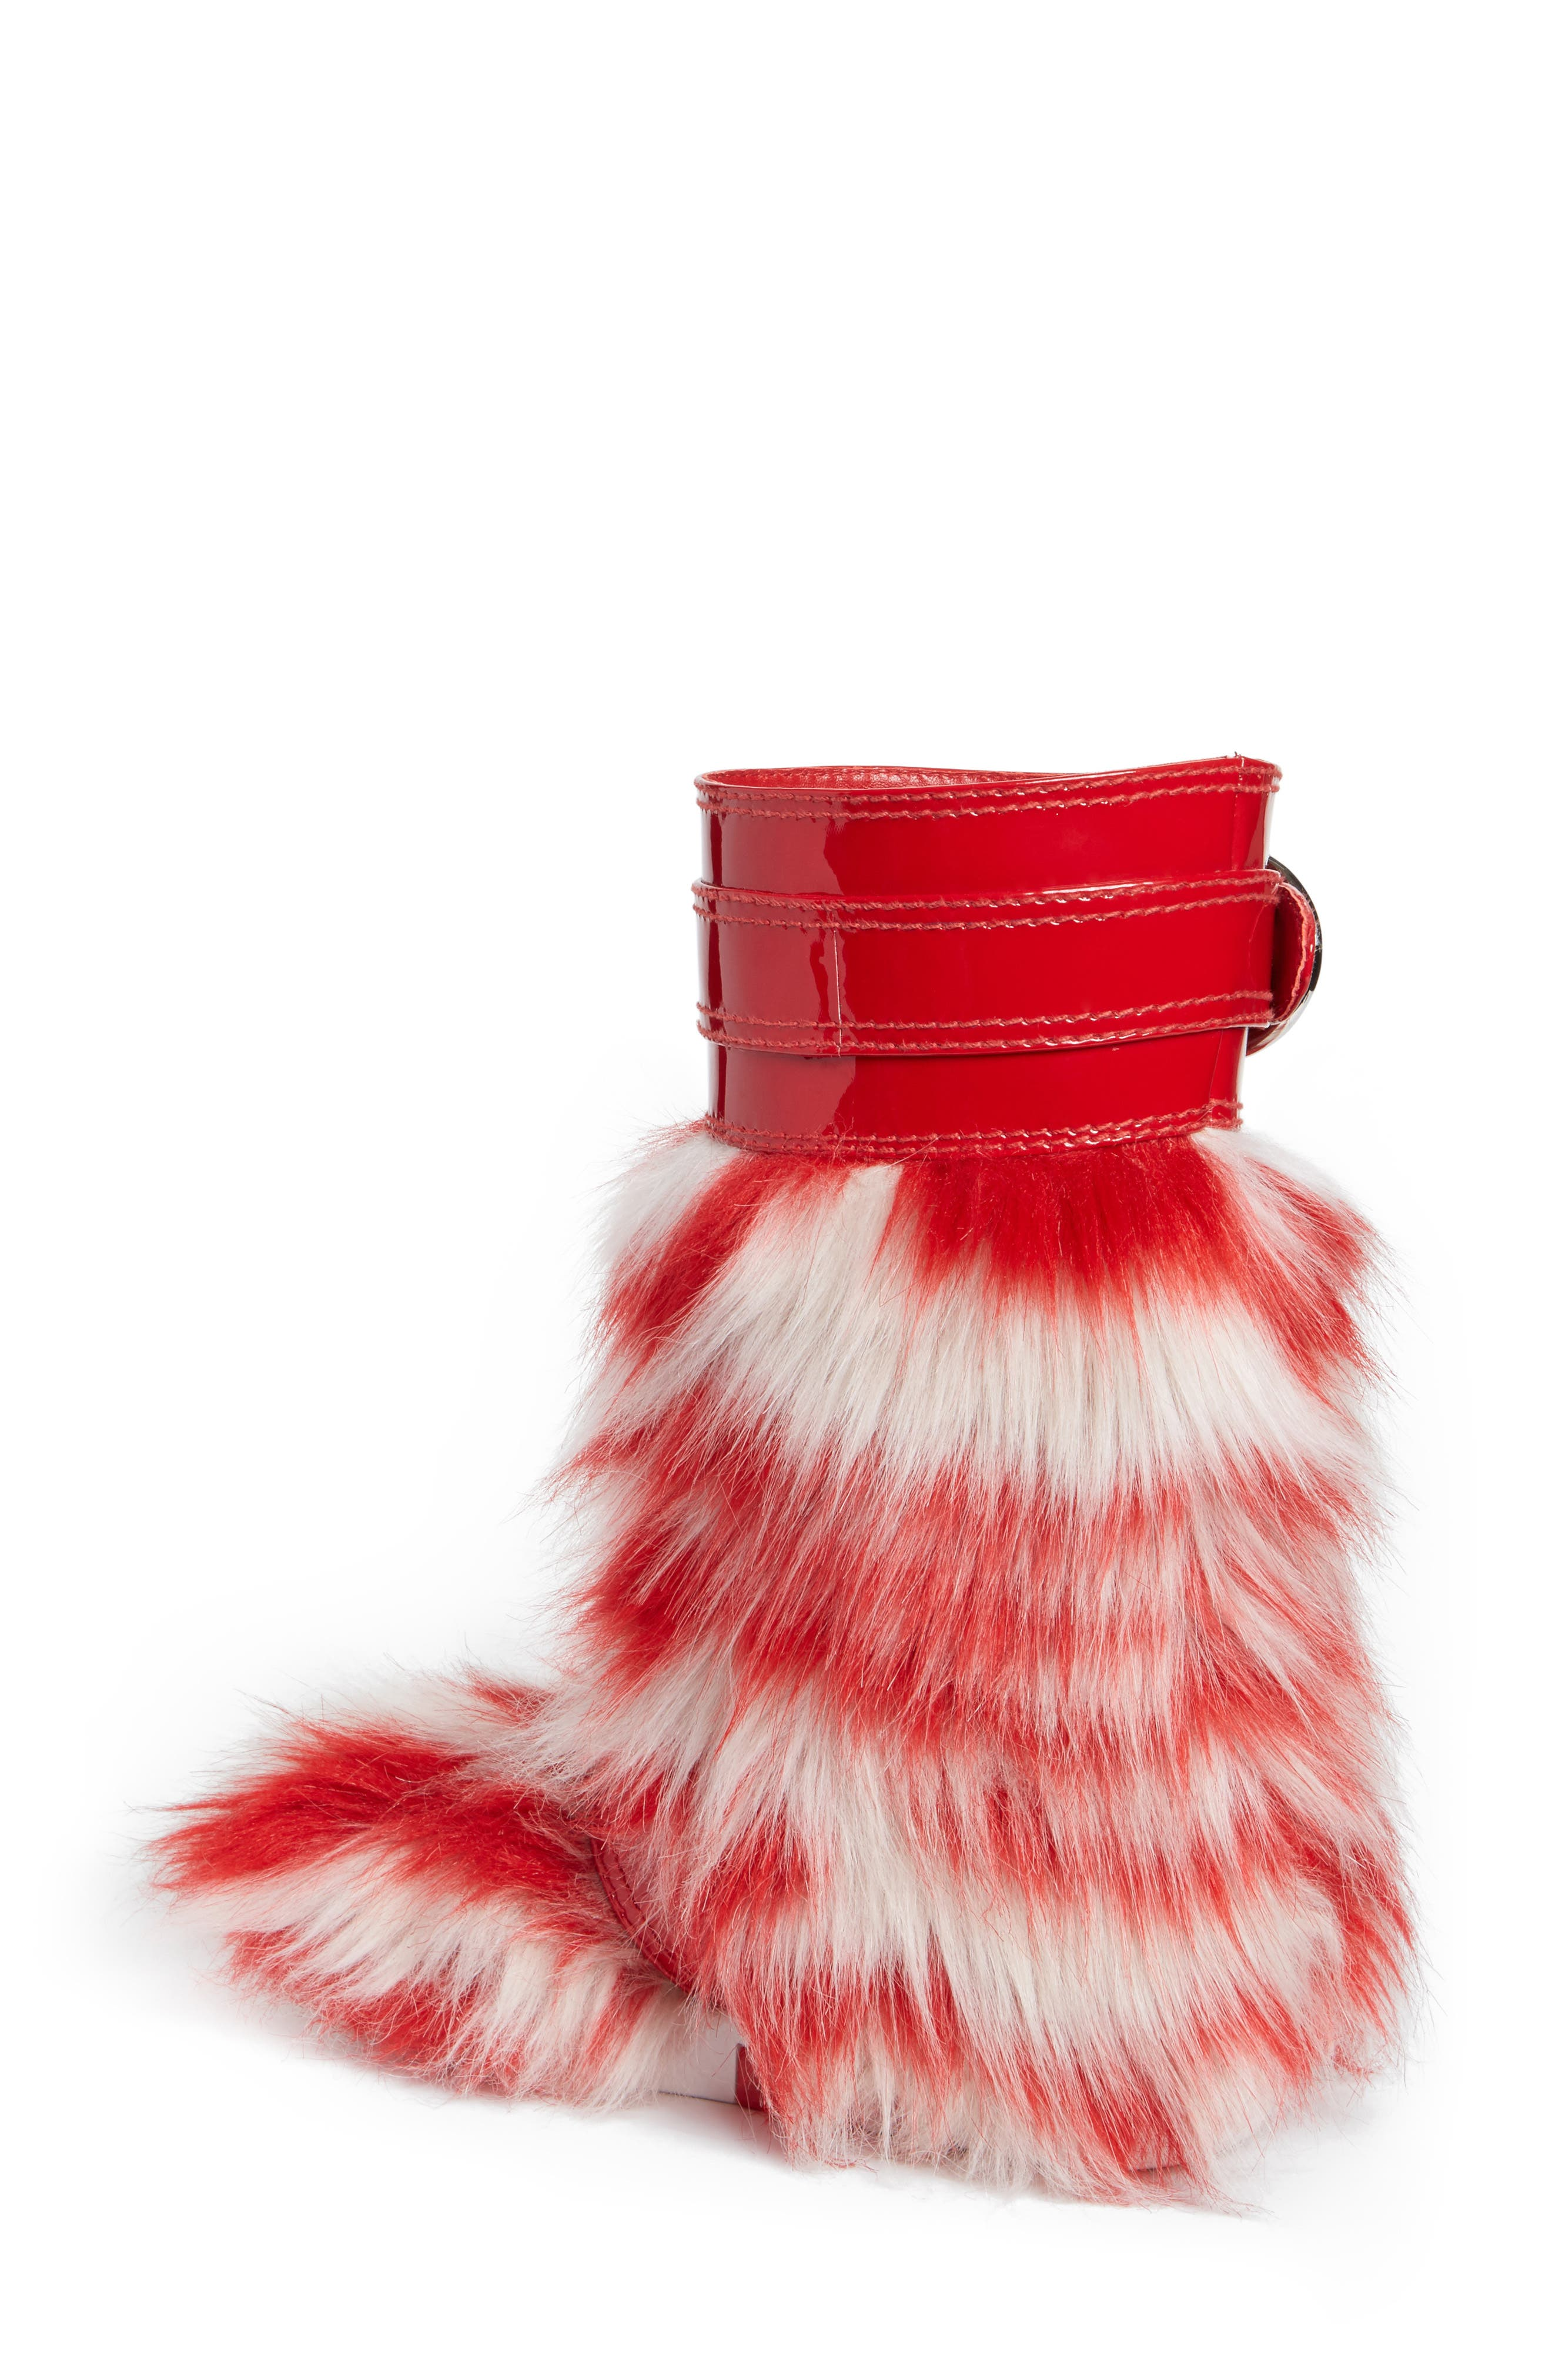 Faux Fur Boot,                             Alternate thumbnail 2, color,                             Red/ White